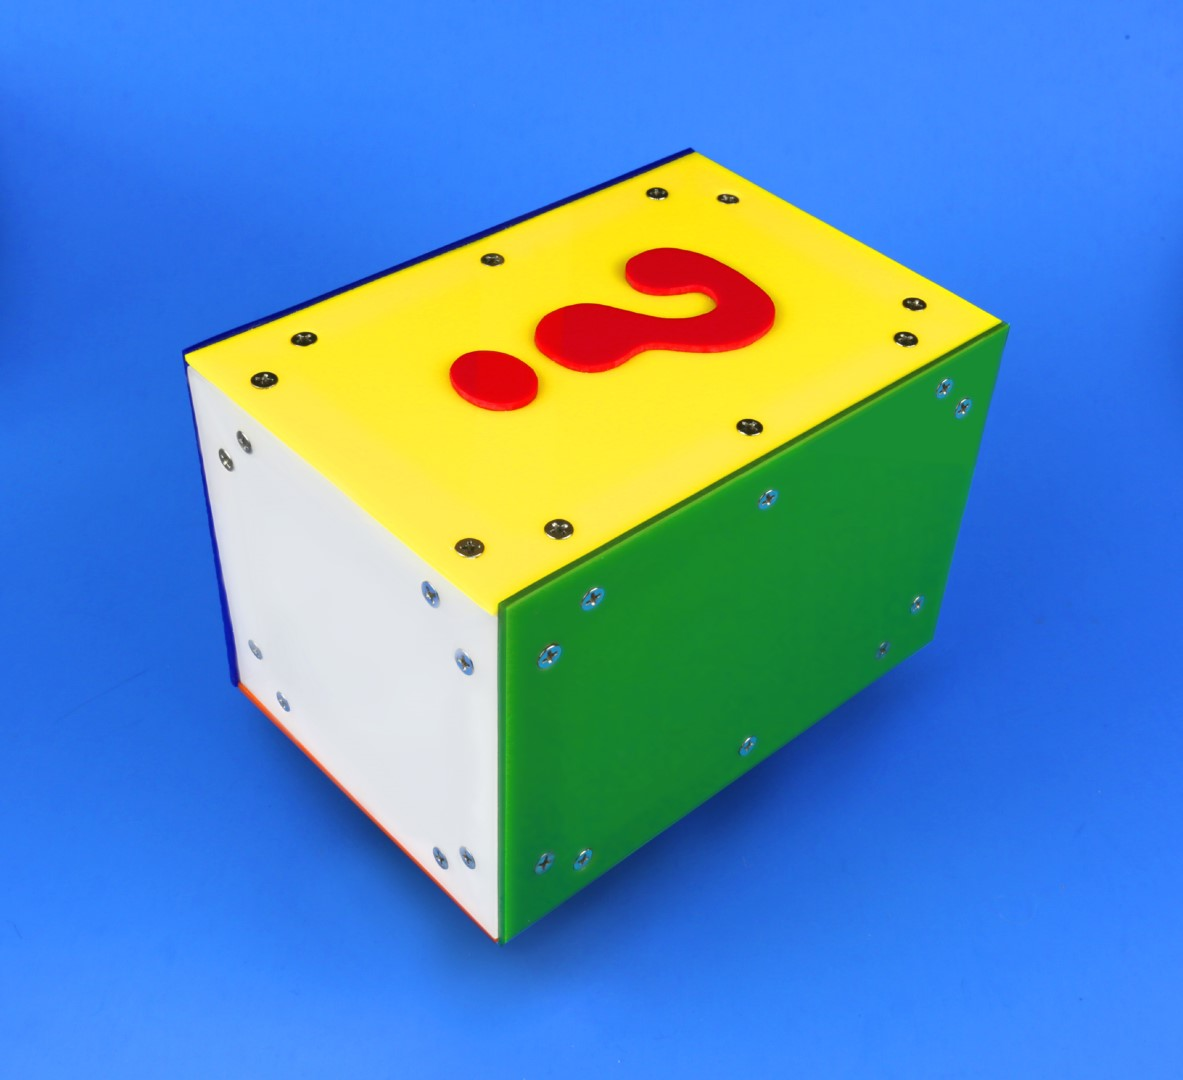 Jumping Mystery Box: Learn Simple Circuits To Detect Motion And Sound